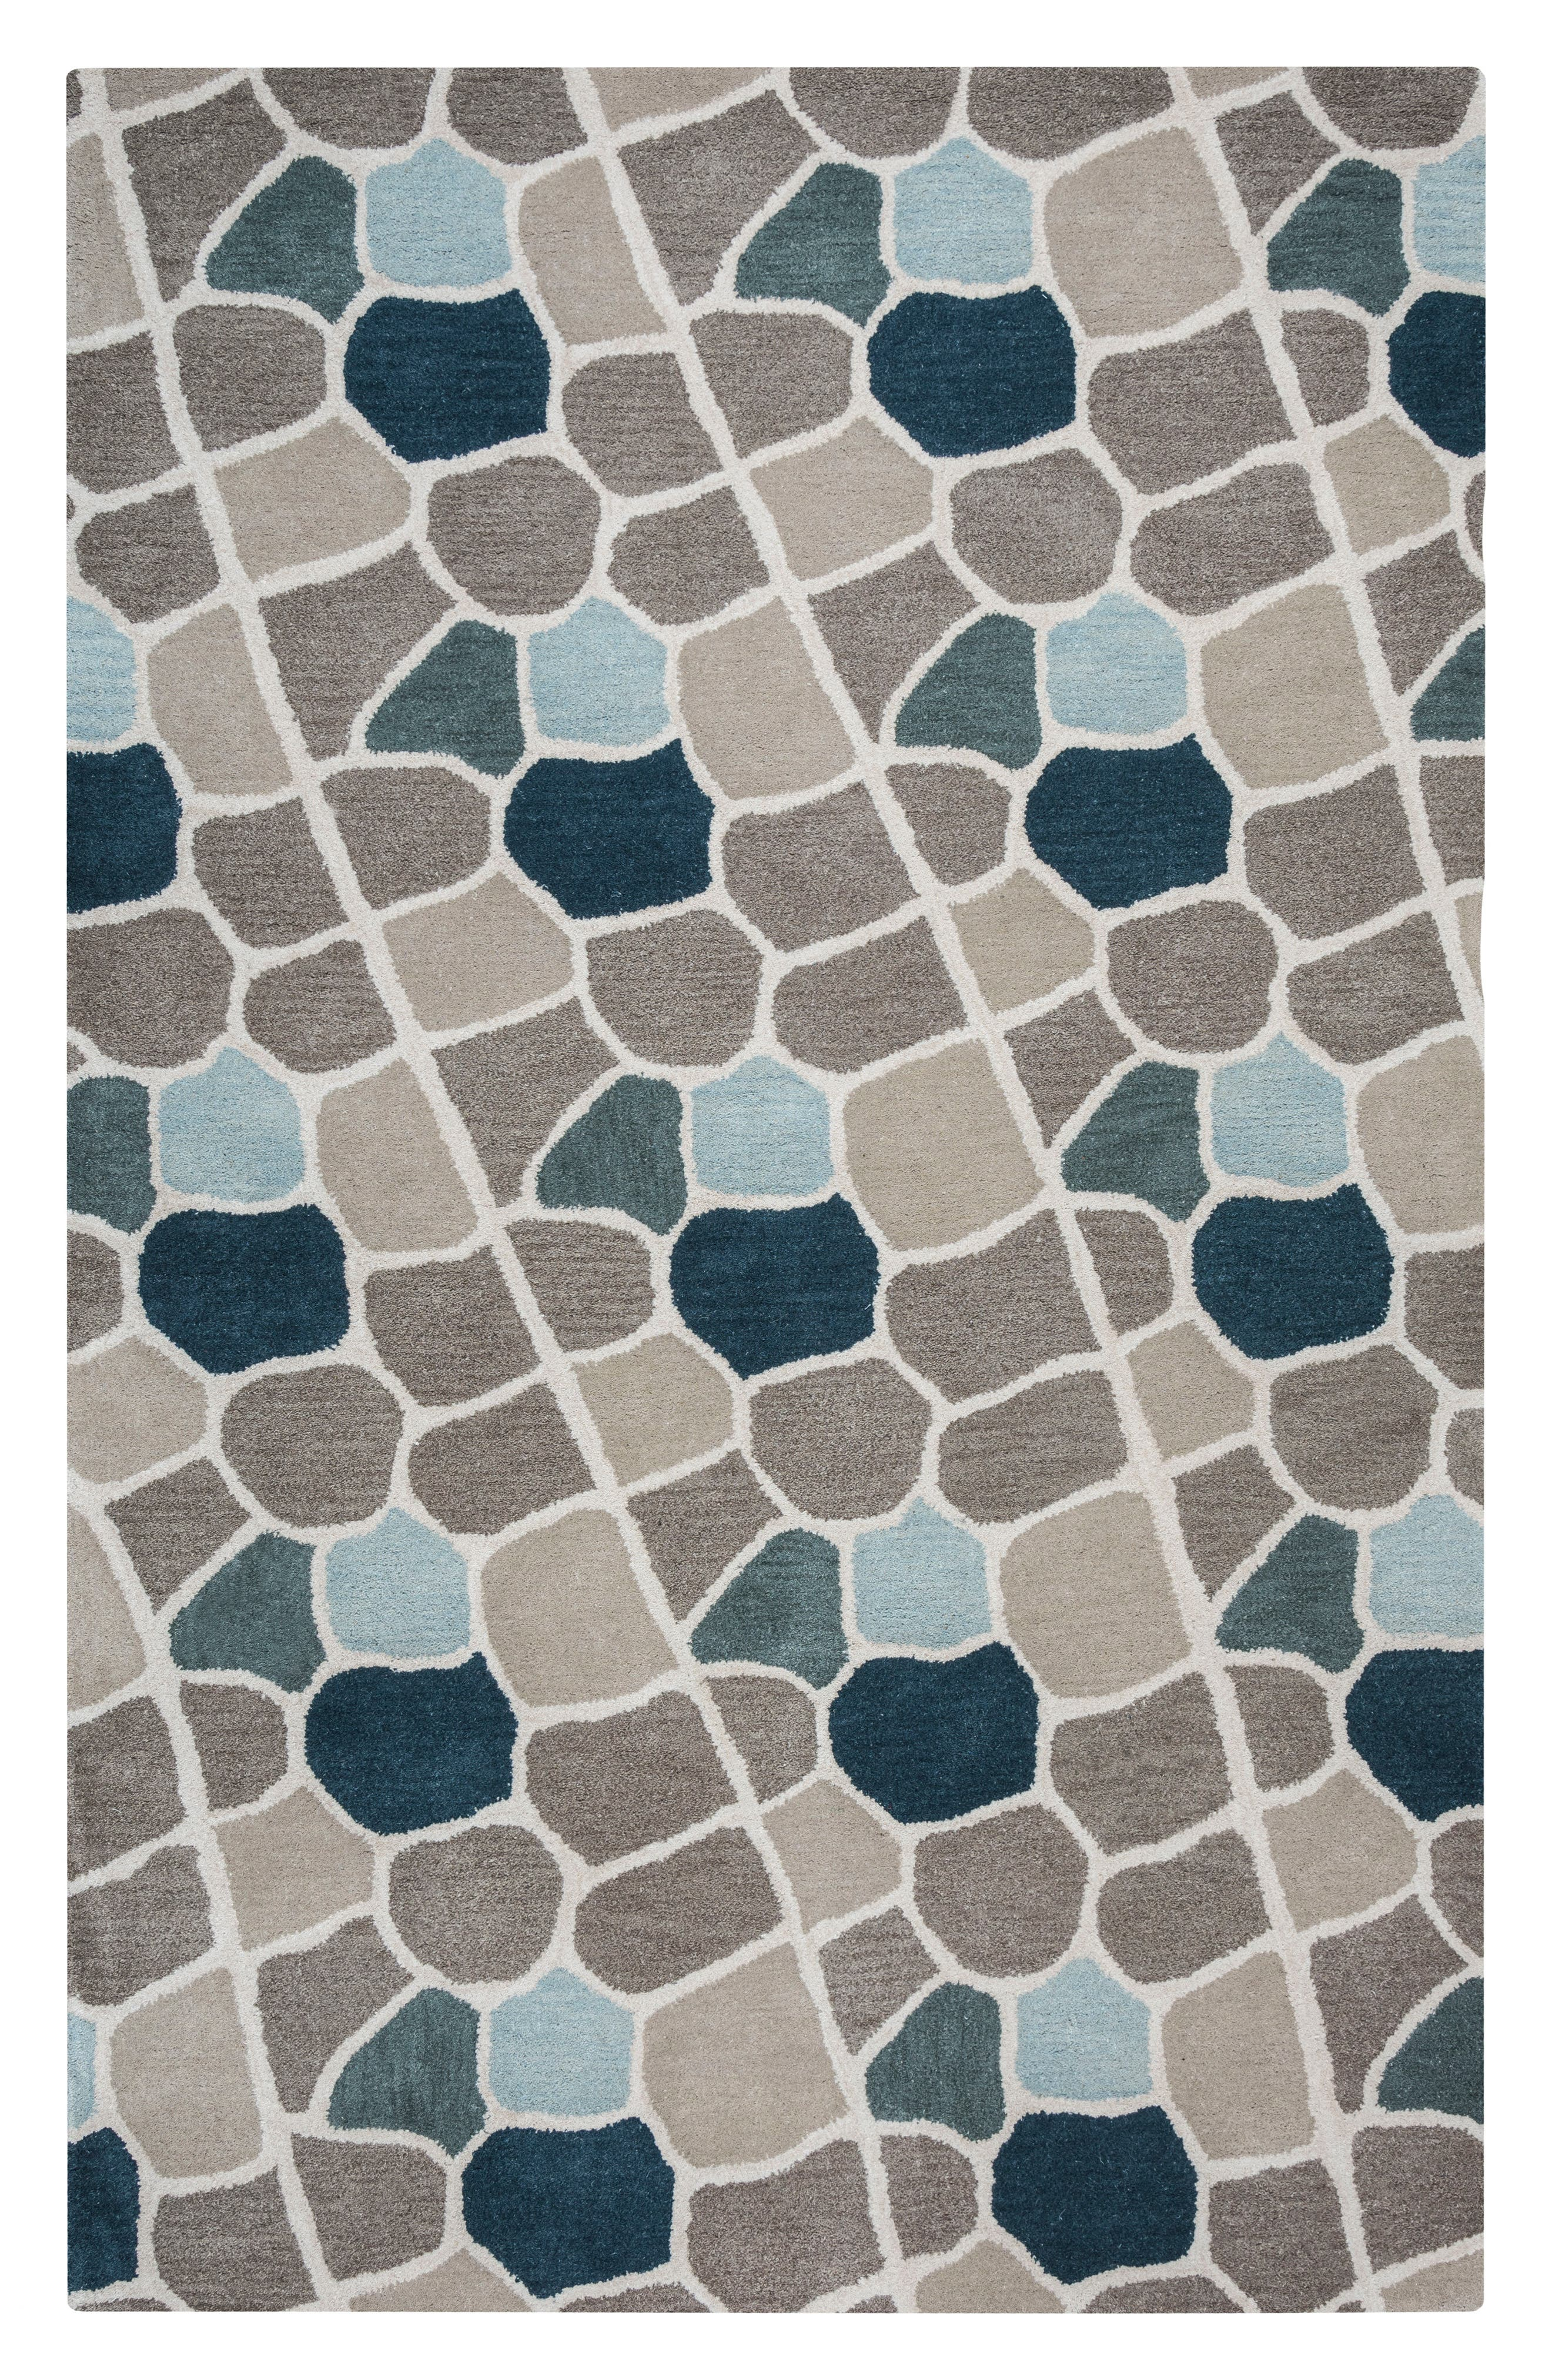 Cobble Geo Hand Tufted Wool Area Rug,                         Main,                         color, Grey/ Blue